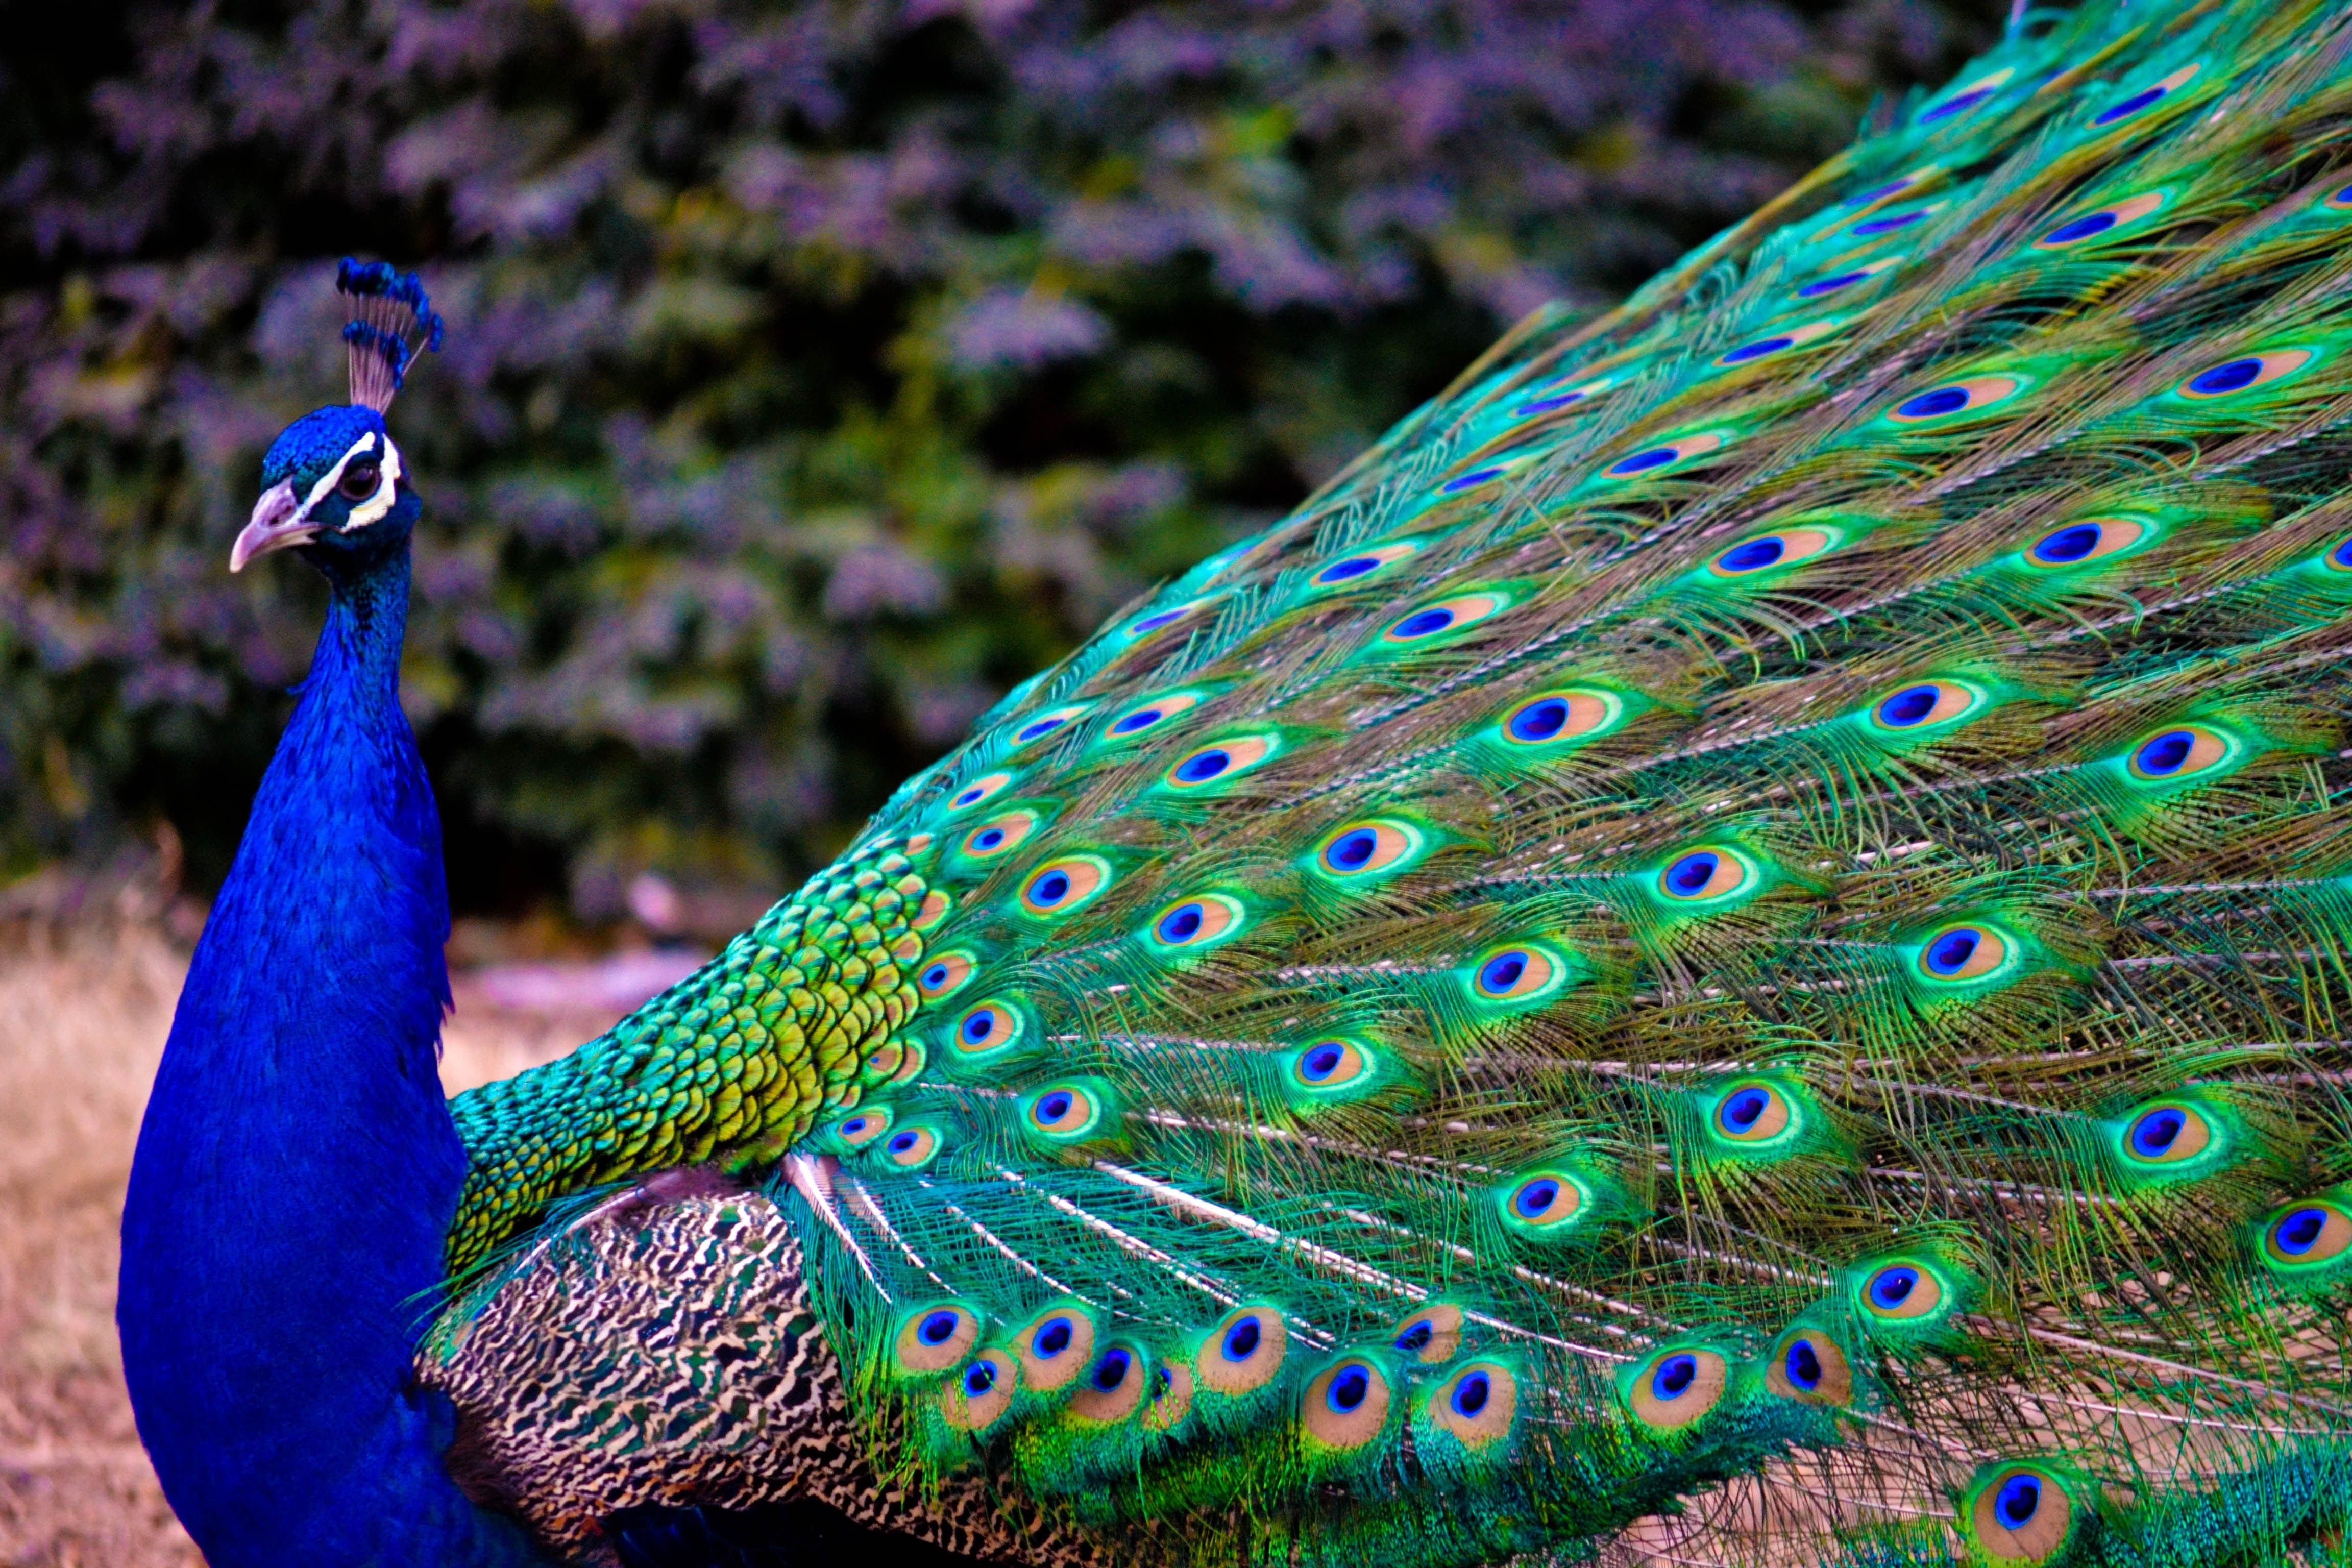 peacock hd wallpaper | peacock pictures | new wallpapers | peacocks